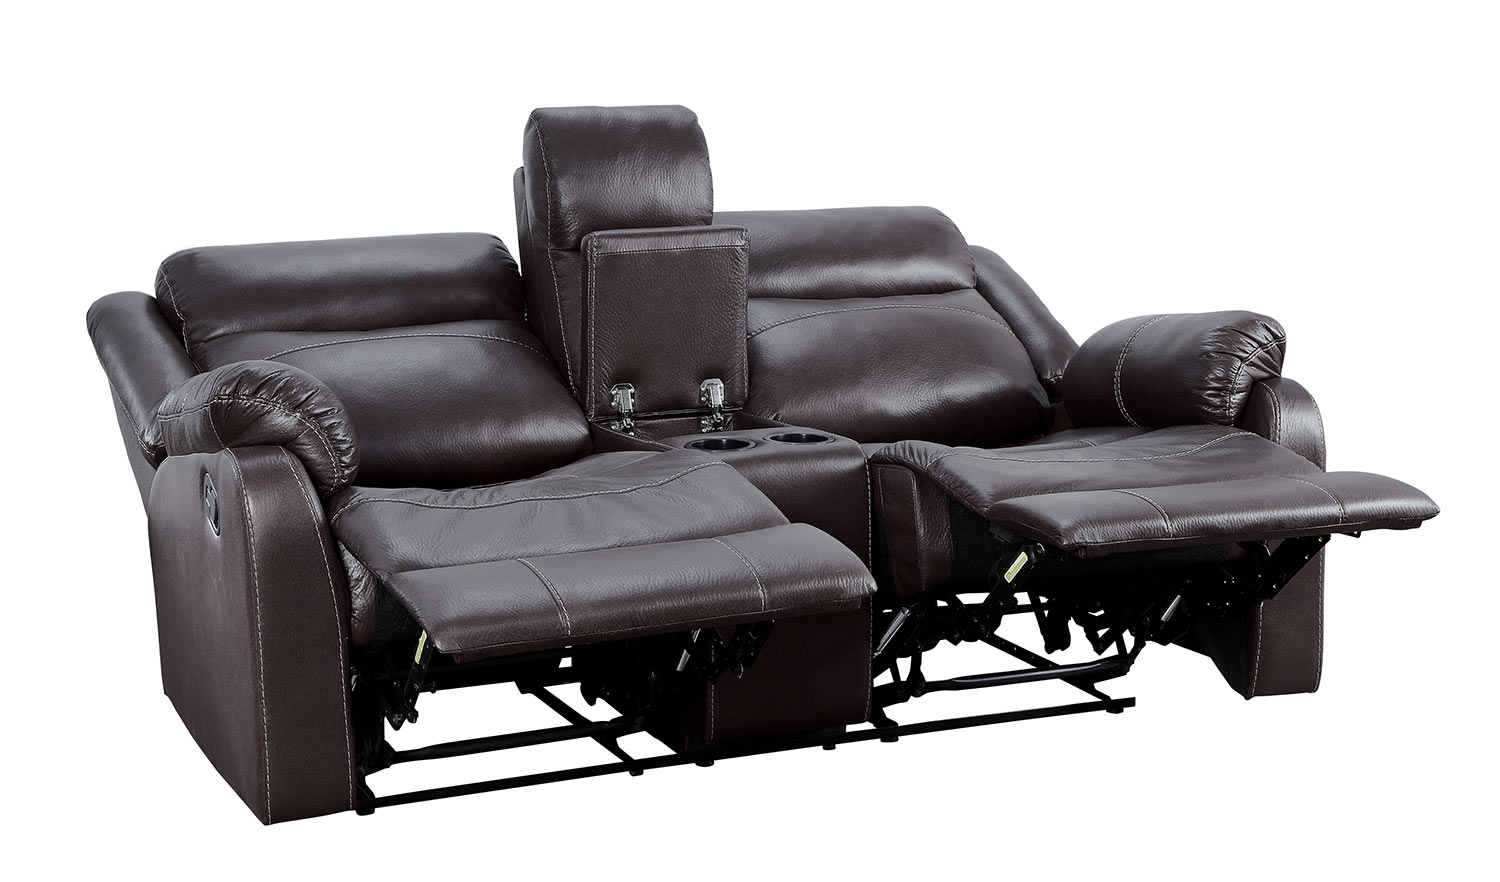 Homelegance Yerba Double Lay Flat Reclining Love Seat With Center Console - Dark Brown